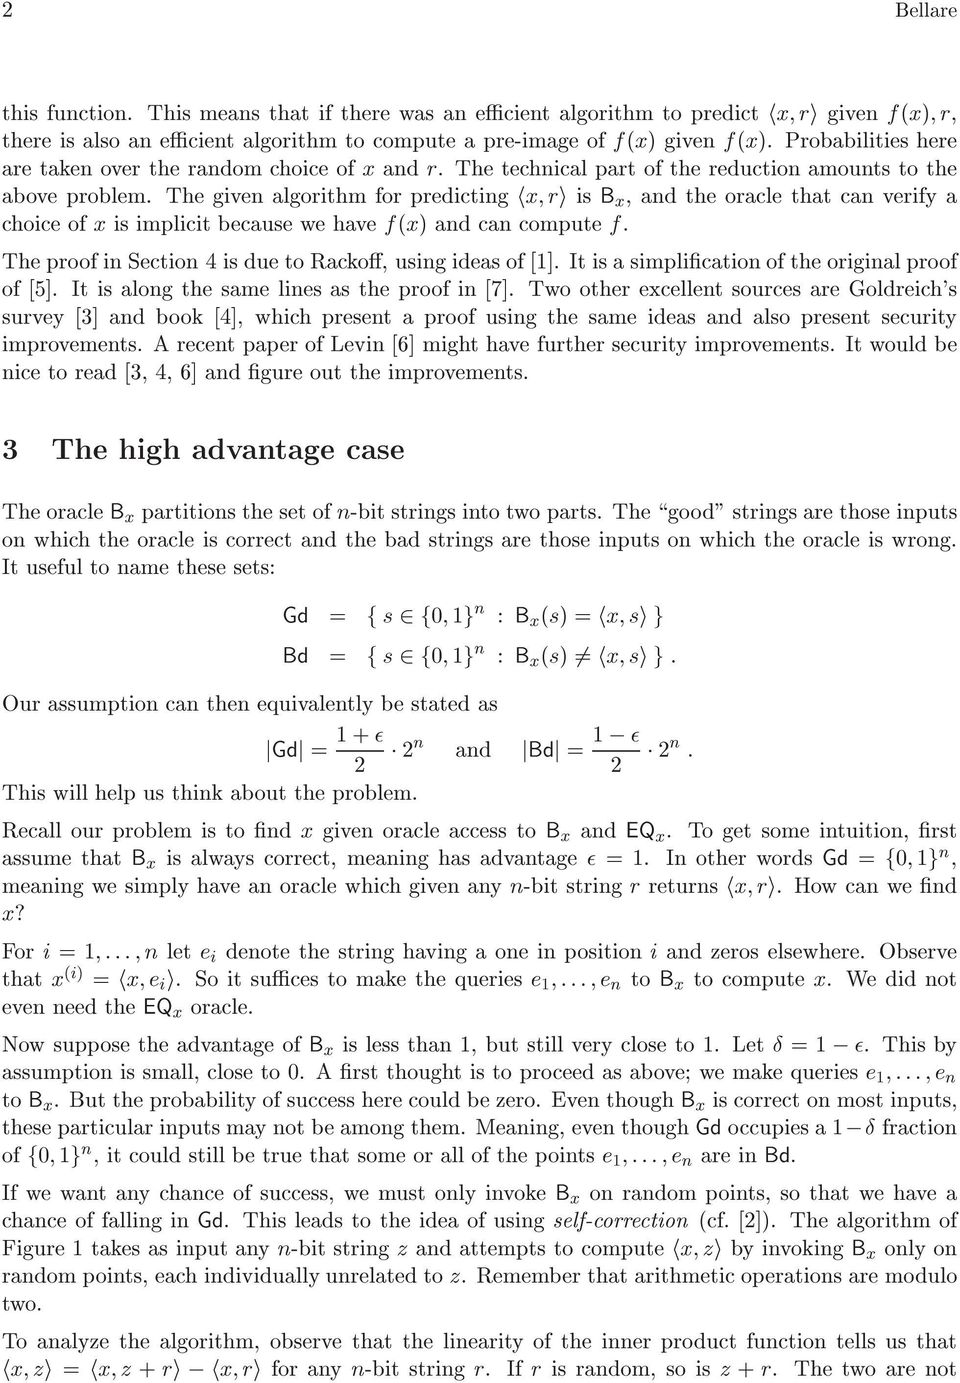 Te given algoritm for predicting x; ri is B x, and te oracle tat can verify a coice of x is implicit because we avefèxè and can compute f. Te proof in Section 4 is due to Rackoæ, using ideas of ë1ë.